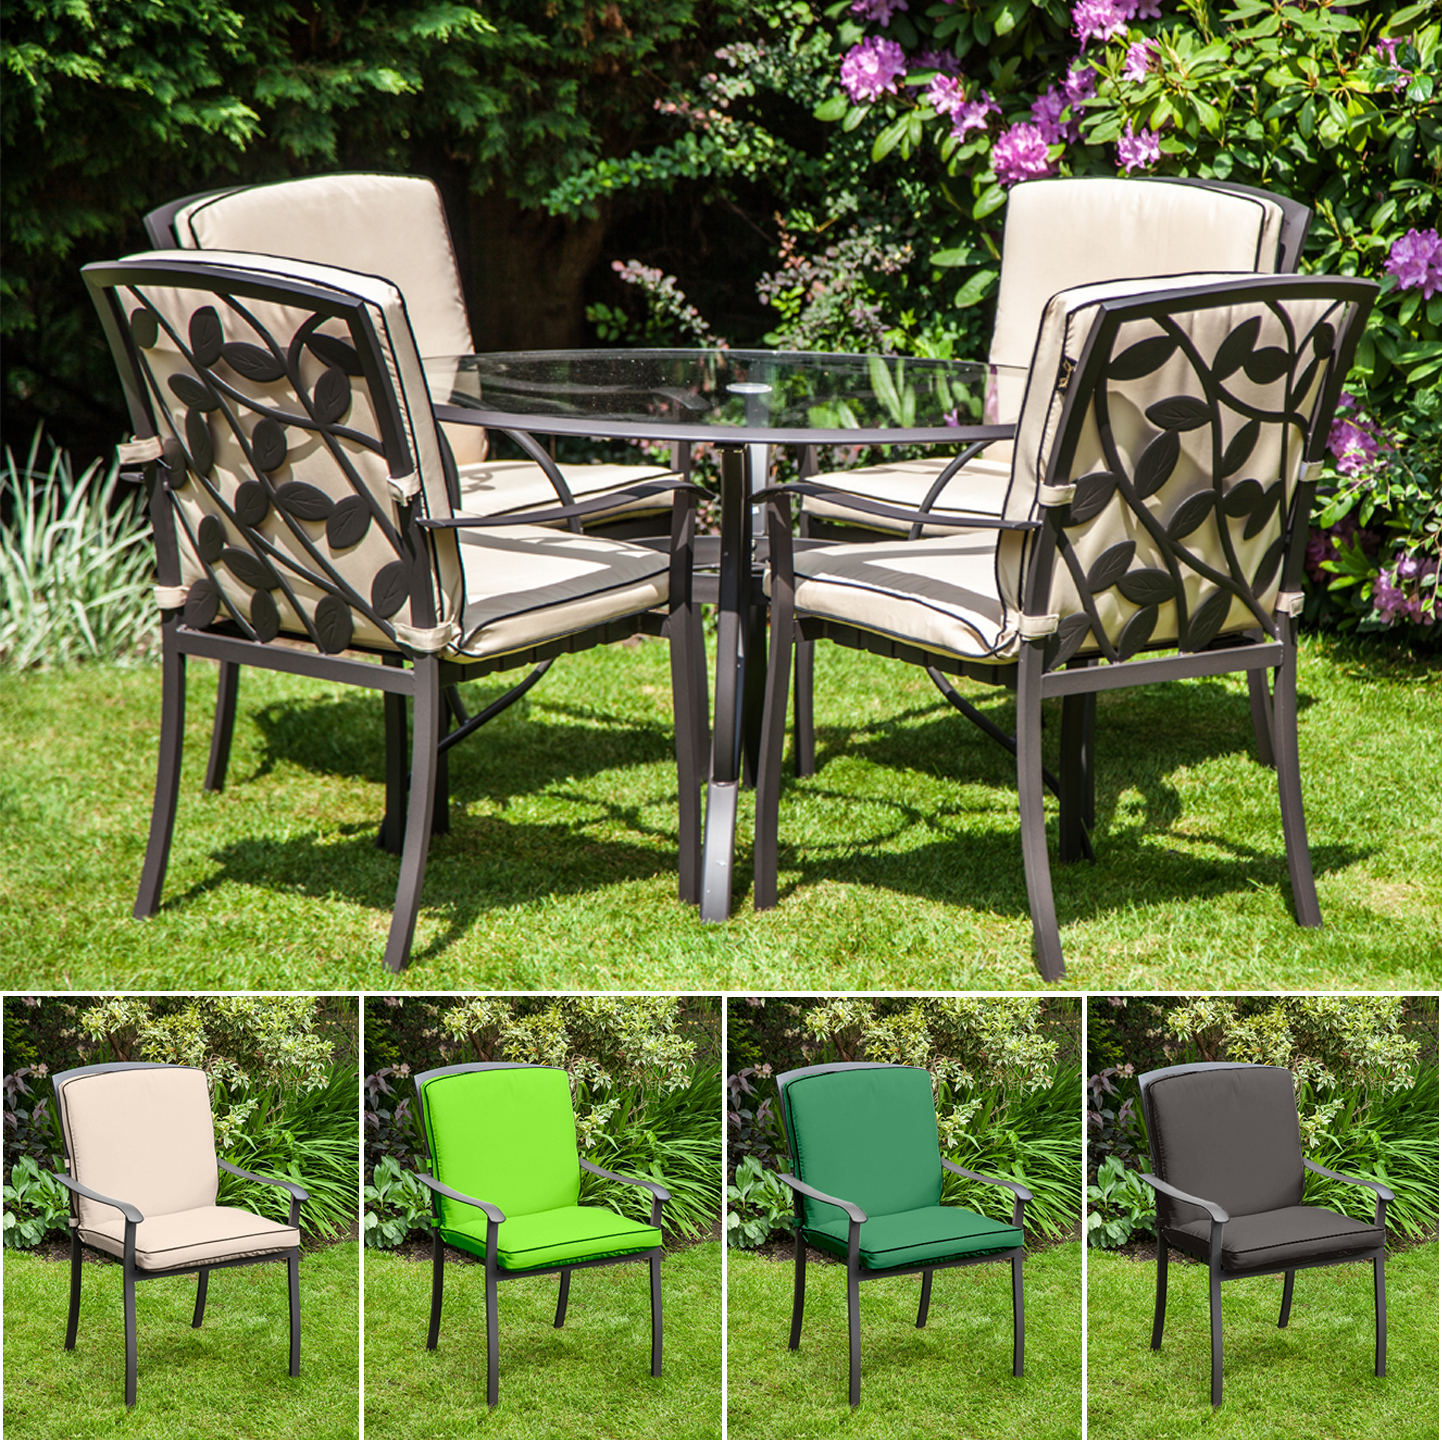 Garden Chair Replacement Cushion For Homebase Lucca Metal Garden Patio